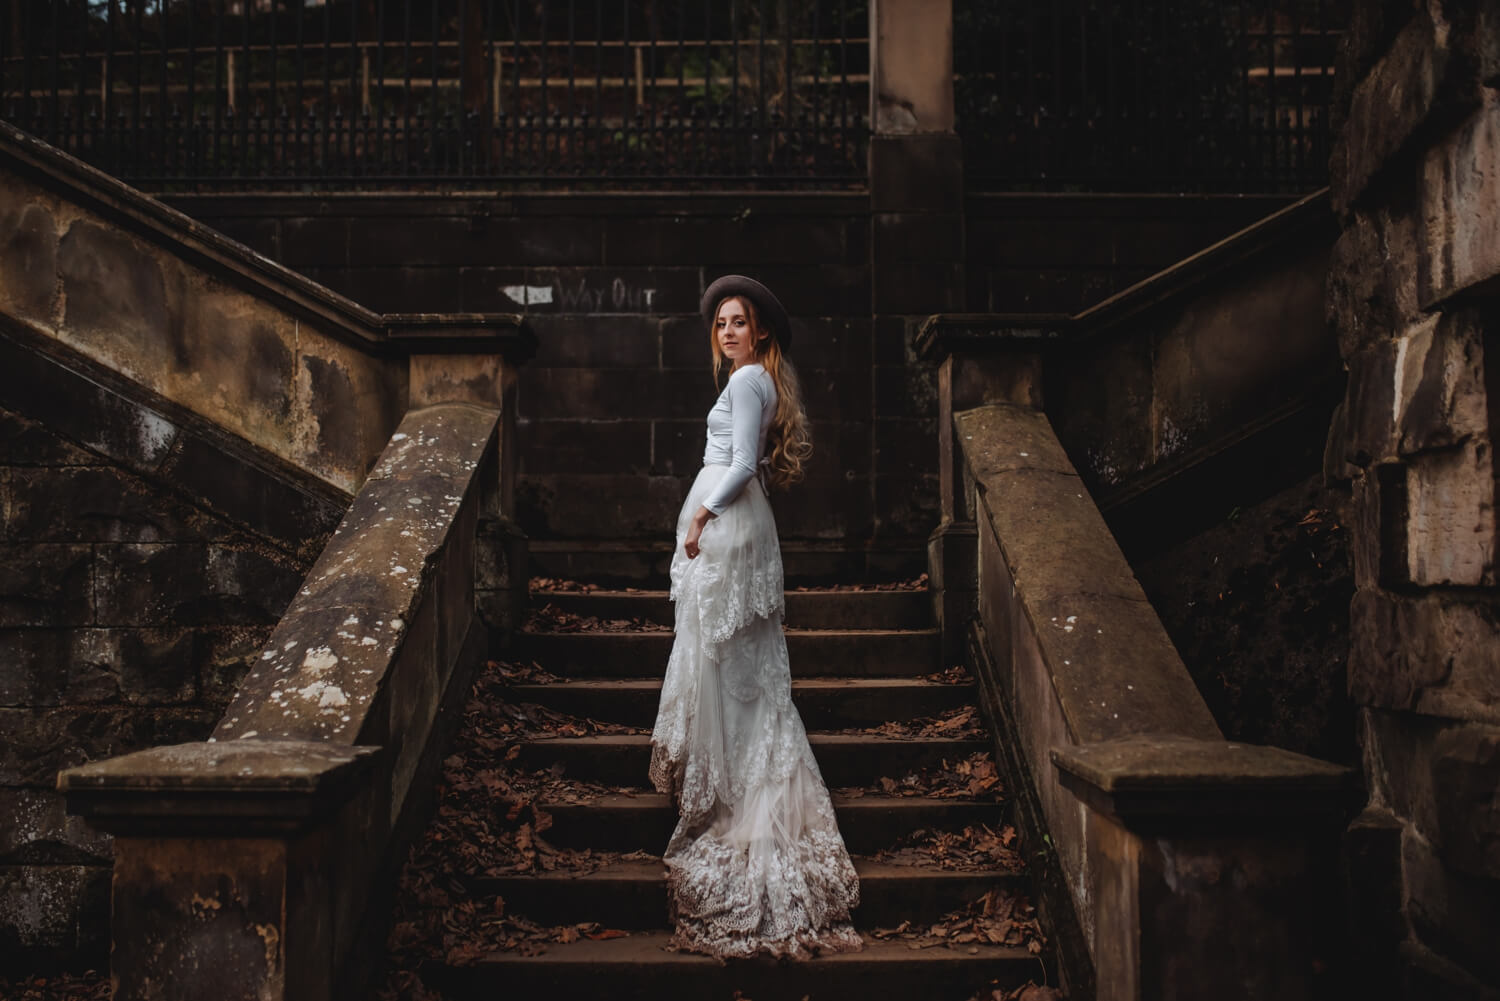 dean village, elopement, Bride and groom Wedding Photographer in Edinburgh - The Adamkovi